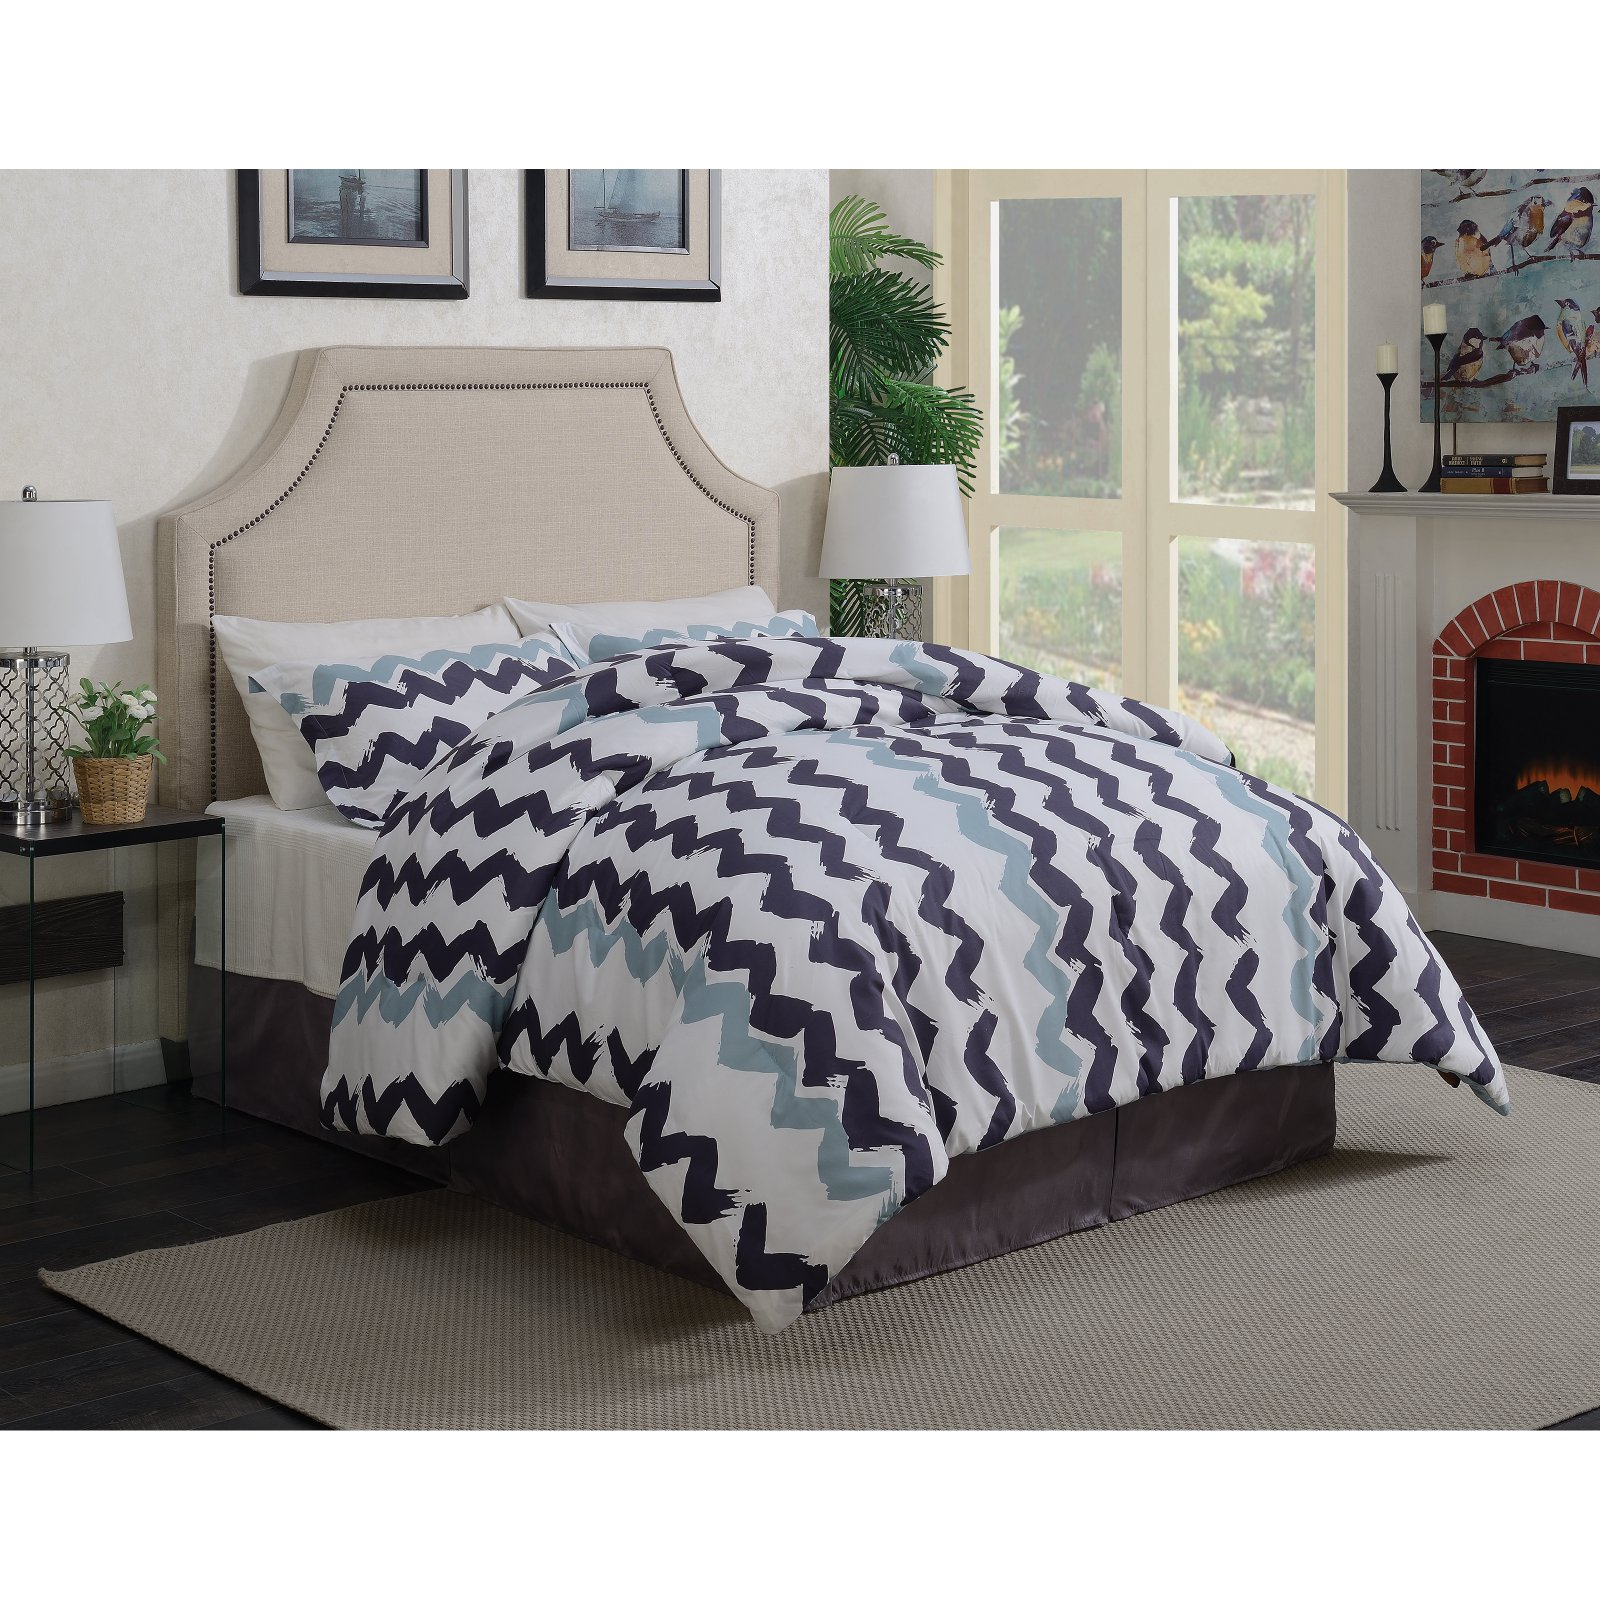 Coaster Furniture Rivera Fabric Upholstered Bed